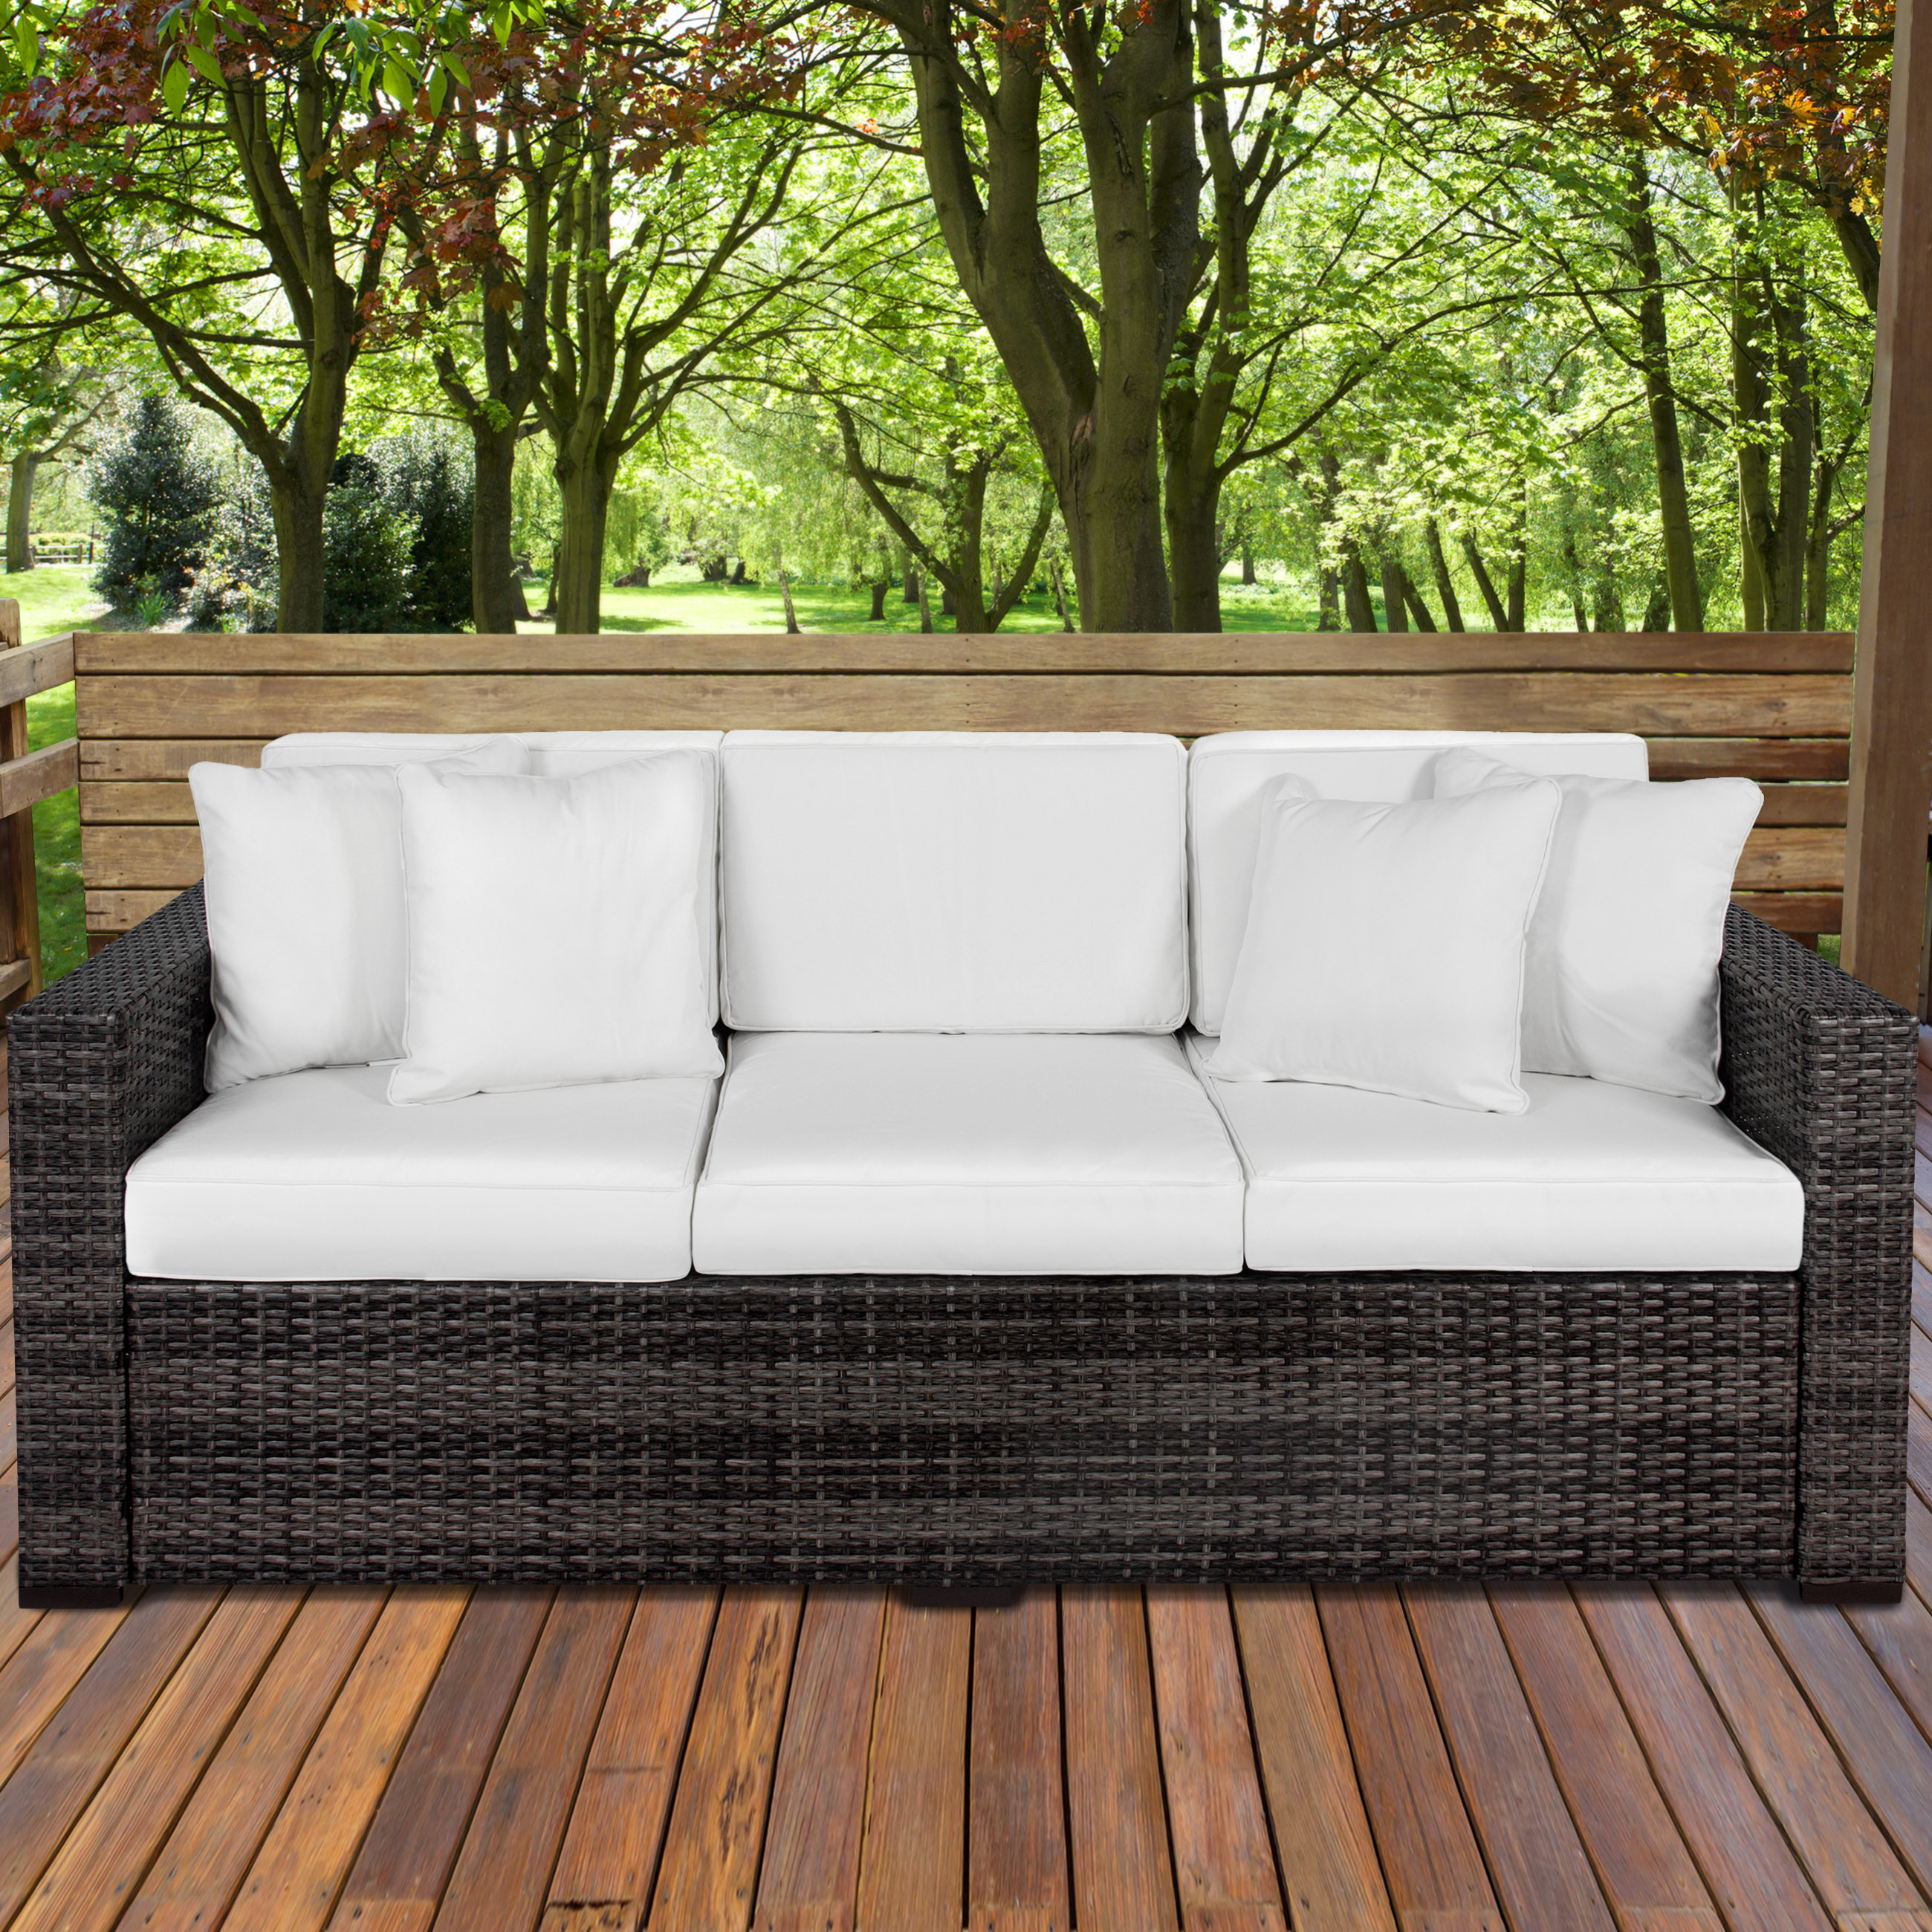 BCP 3-Seat Outdoor Wicker Patio Furniture Sofa Couch w  Steel Frame by Best Choice Products